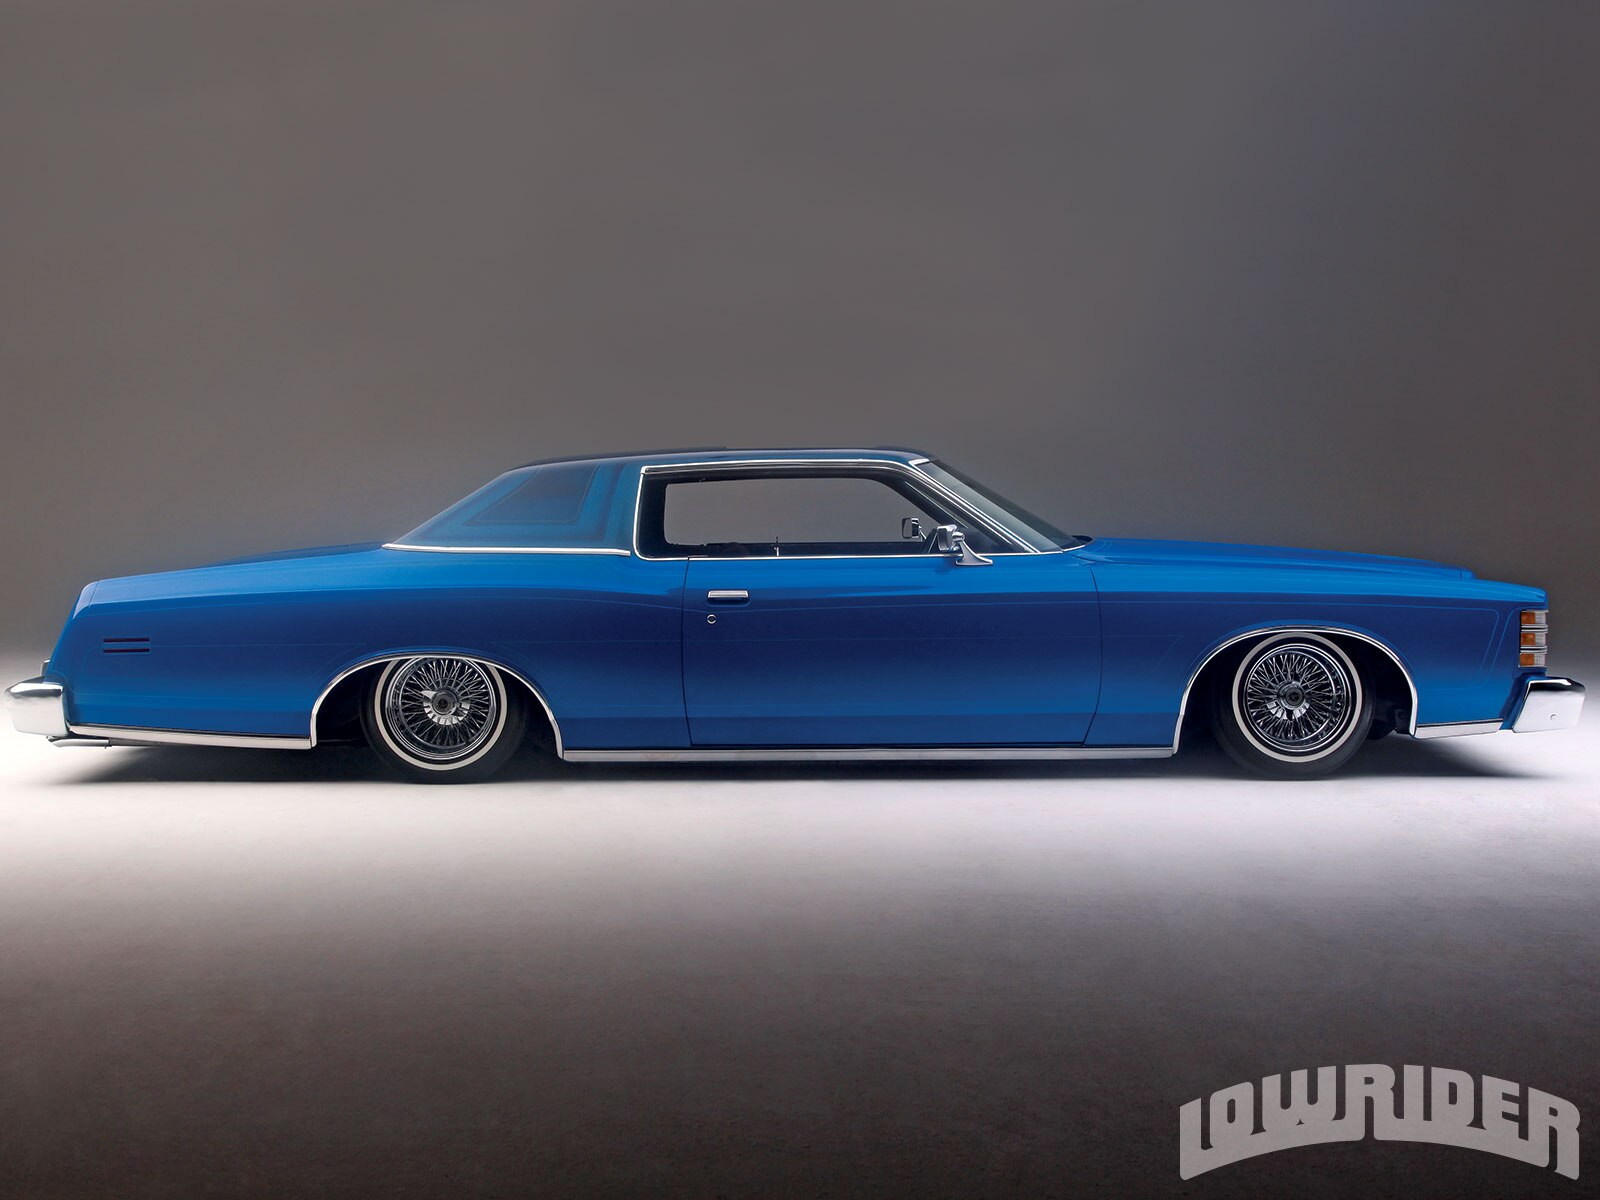 Ltd Lowrider >> 1973 Ford LTD - True Blue - Lowrider Magazine